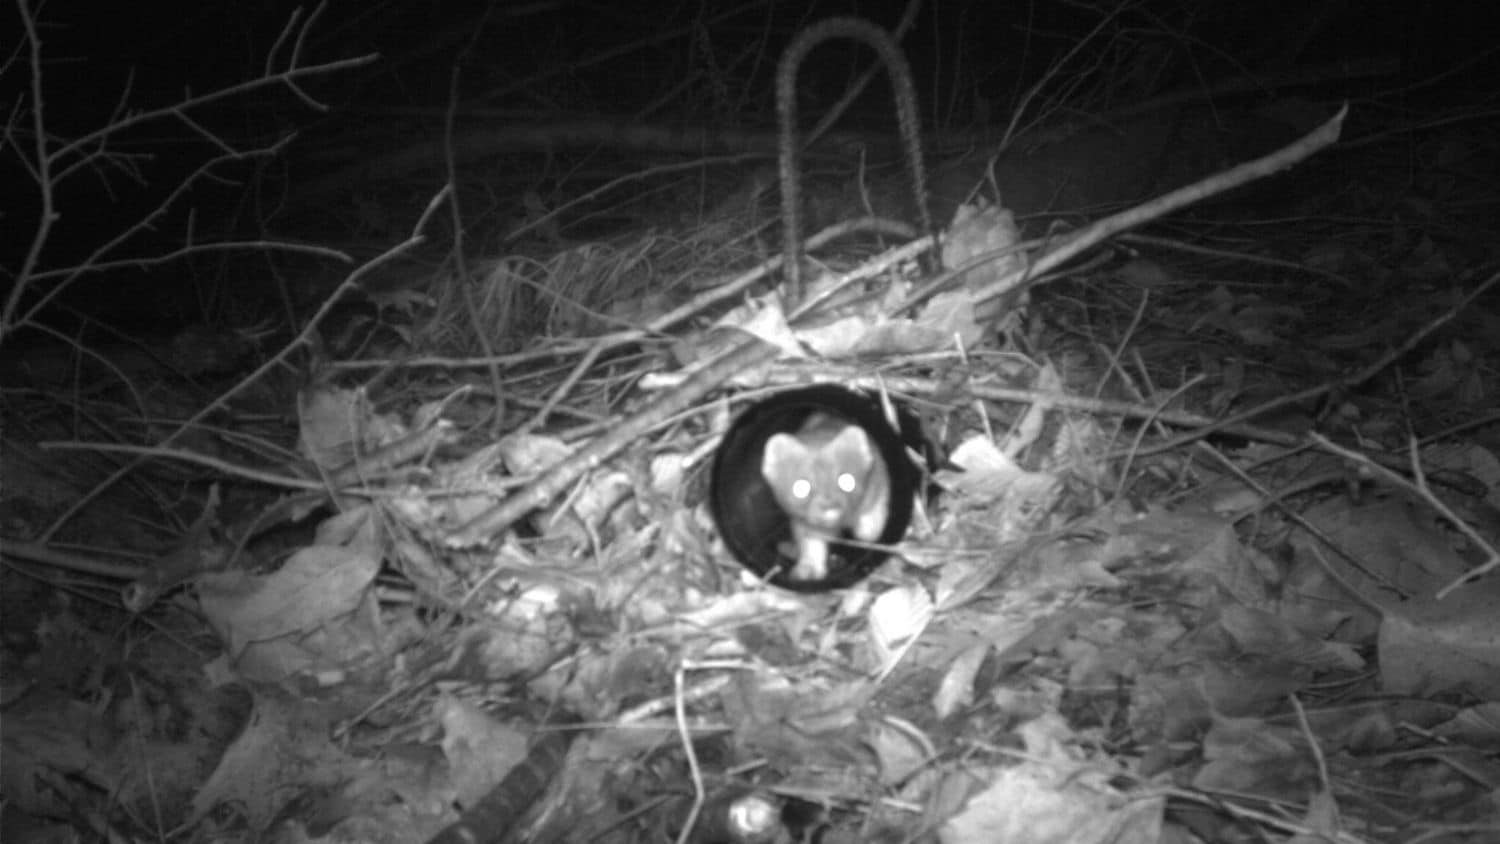 Long-tailed weasel - AStudy Tracks Decline of Weasels, the Smallest Carnivore, in North America - Forestry and Environmental Resources Department at NC State